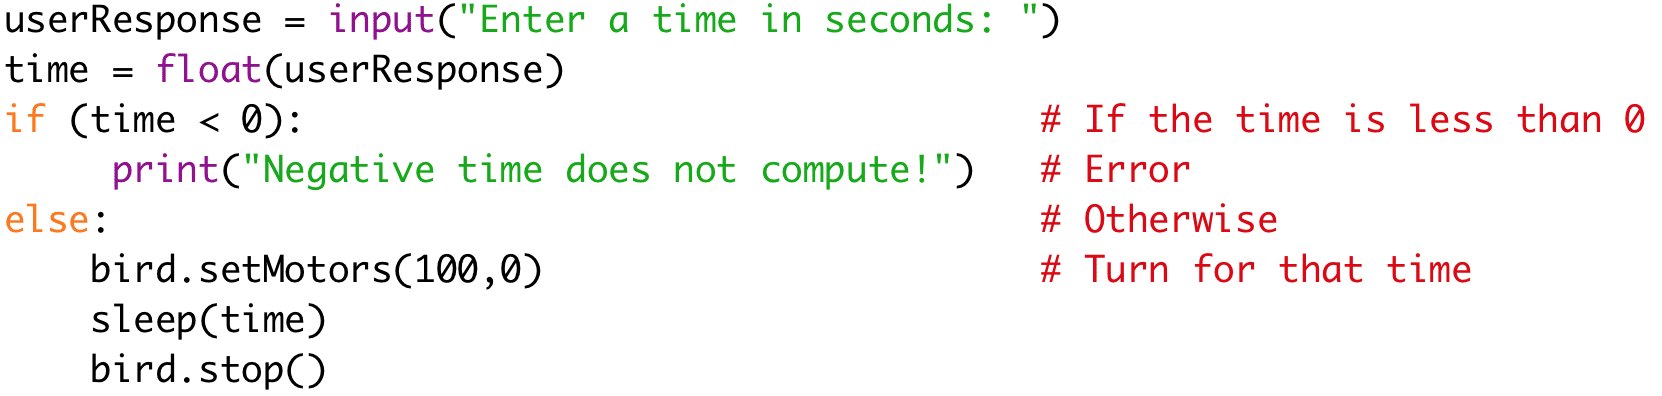 """userResponse = input(""""Enter a time in seconds: """")  time = float(userResponse)  if (time < 0): # If the time is less than 0  print(""""Negative time does not compute!"""") # Error  else: # Otherwise  bird.setMotors(100,0) # Turn for that time  sleep(time)  bird.stop()"""